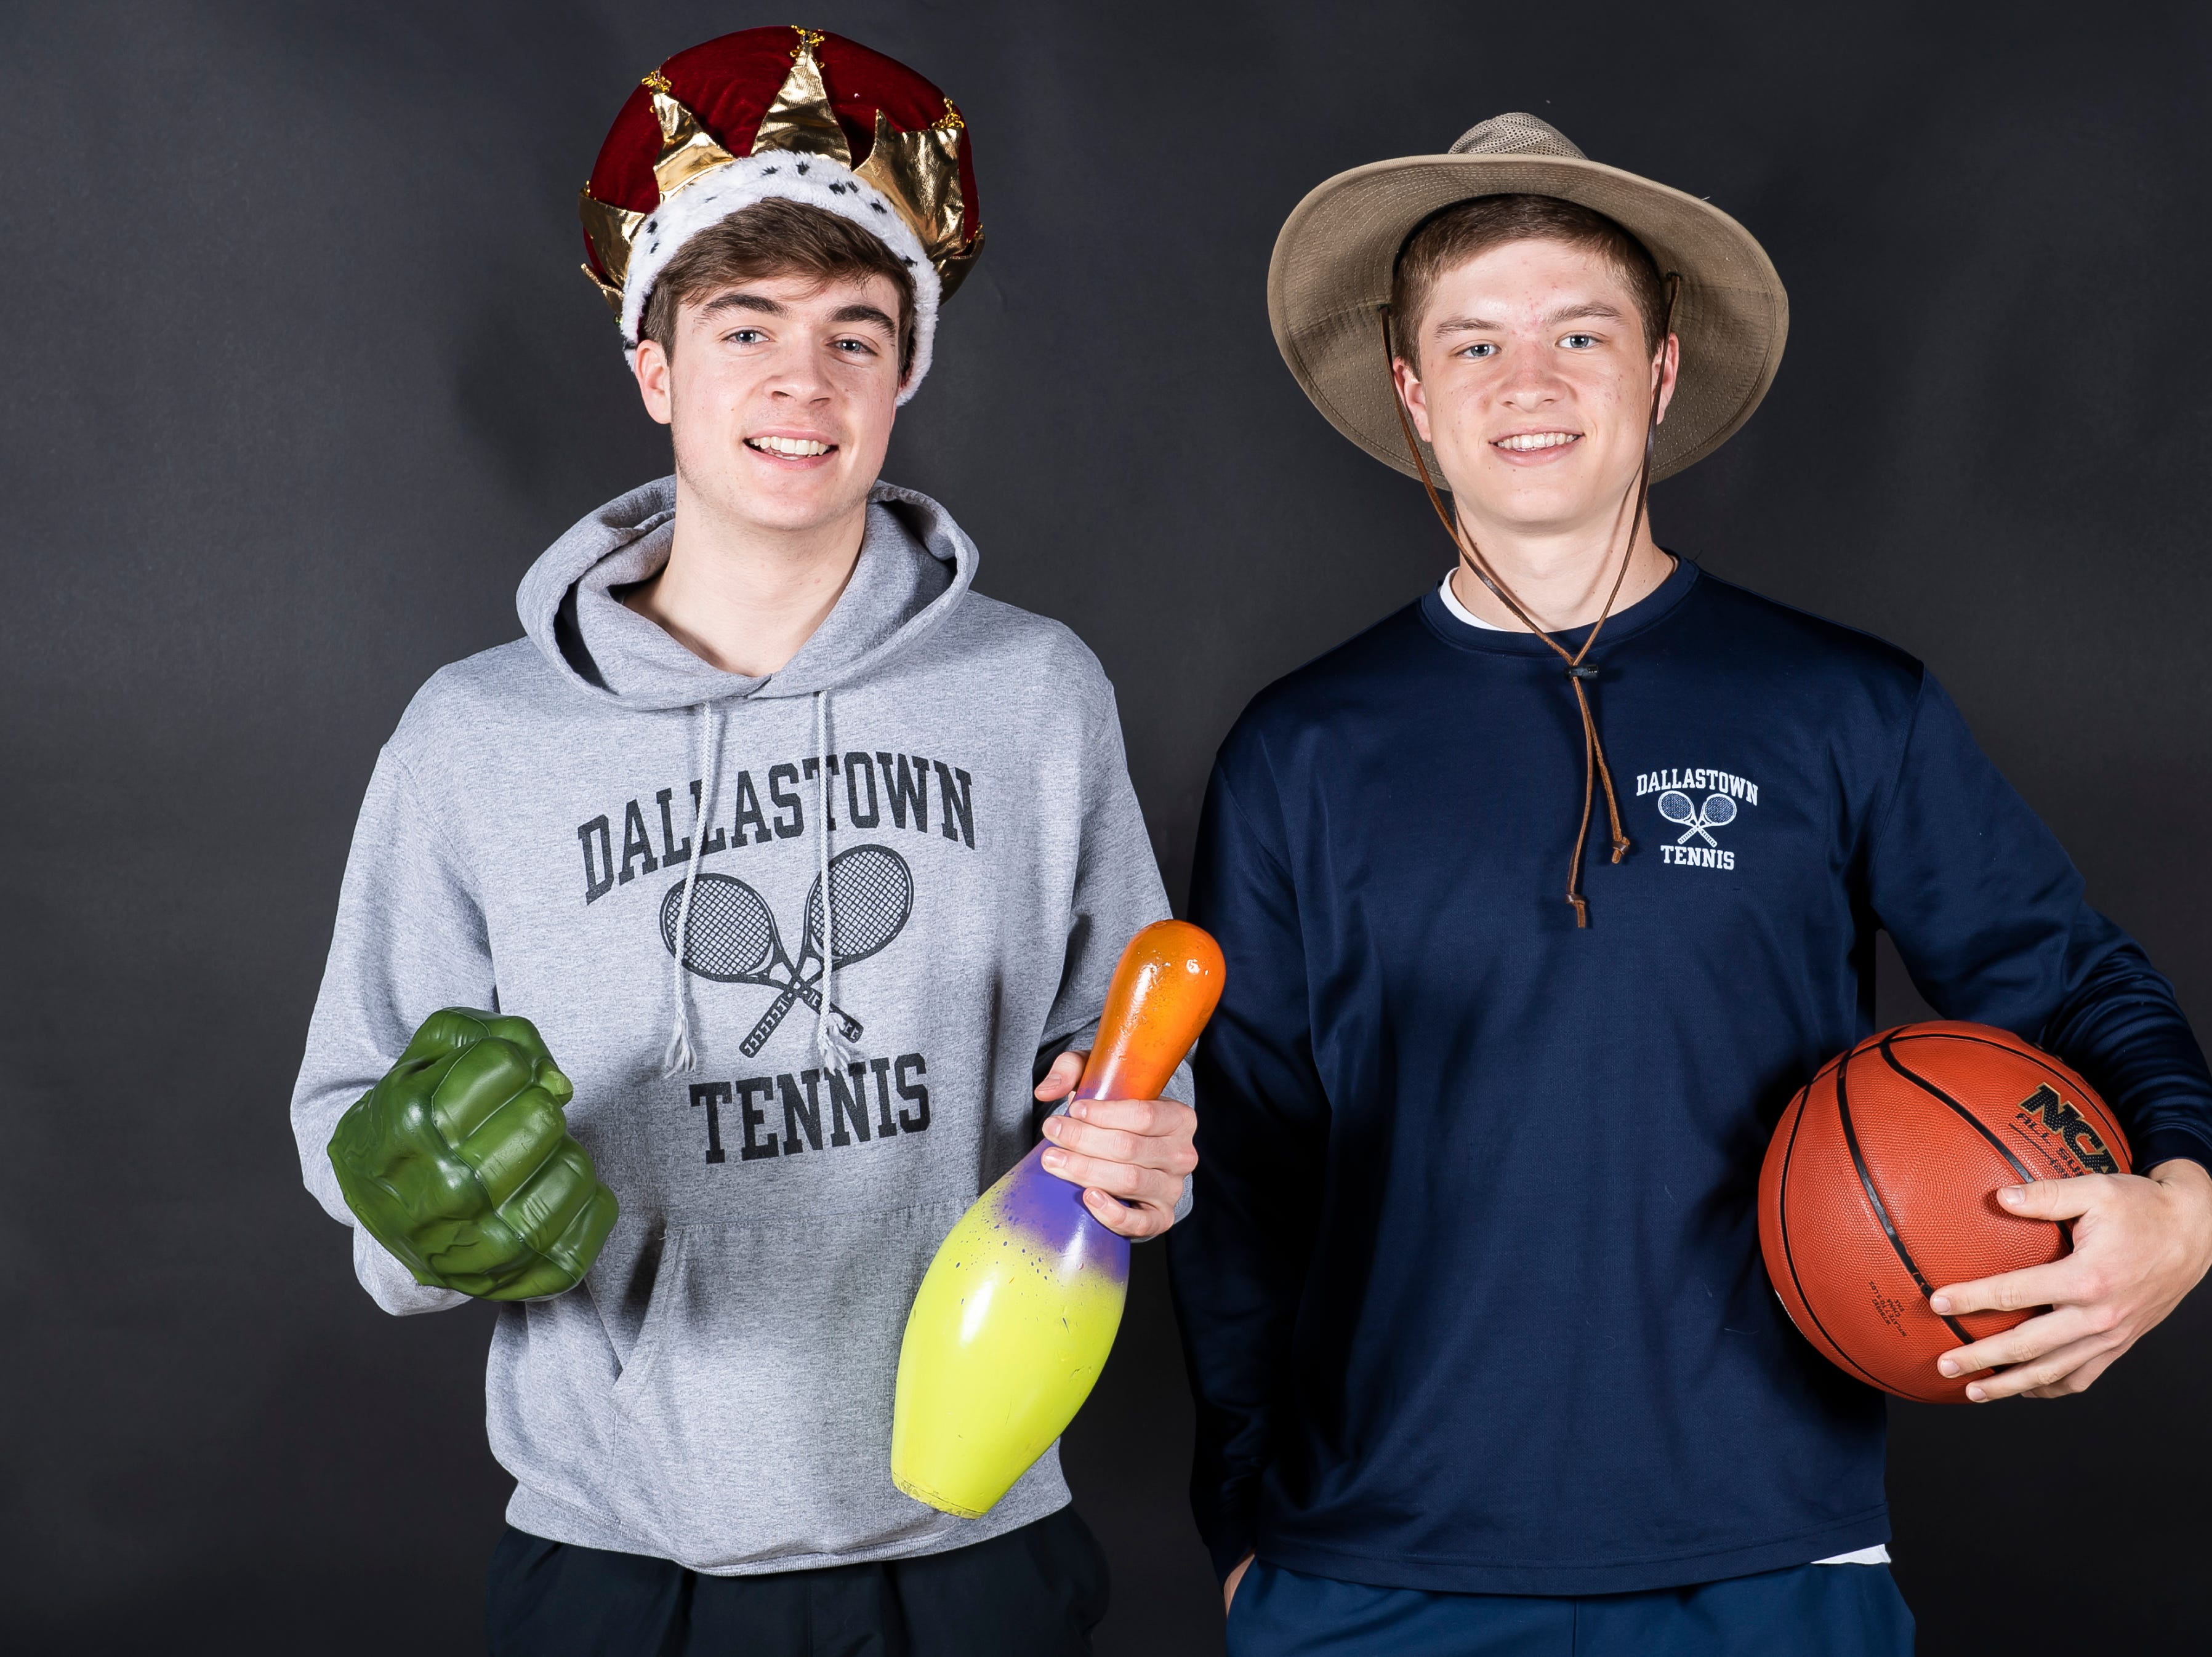 (From left) Dallastown tennis players Sebastian May and Holden Koons strike a pose in the GameTimePA photo booth during spring sports media day in York Sunday, March 10, 2019.